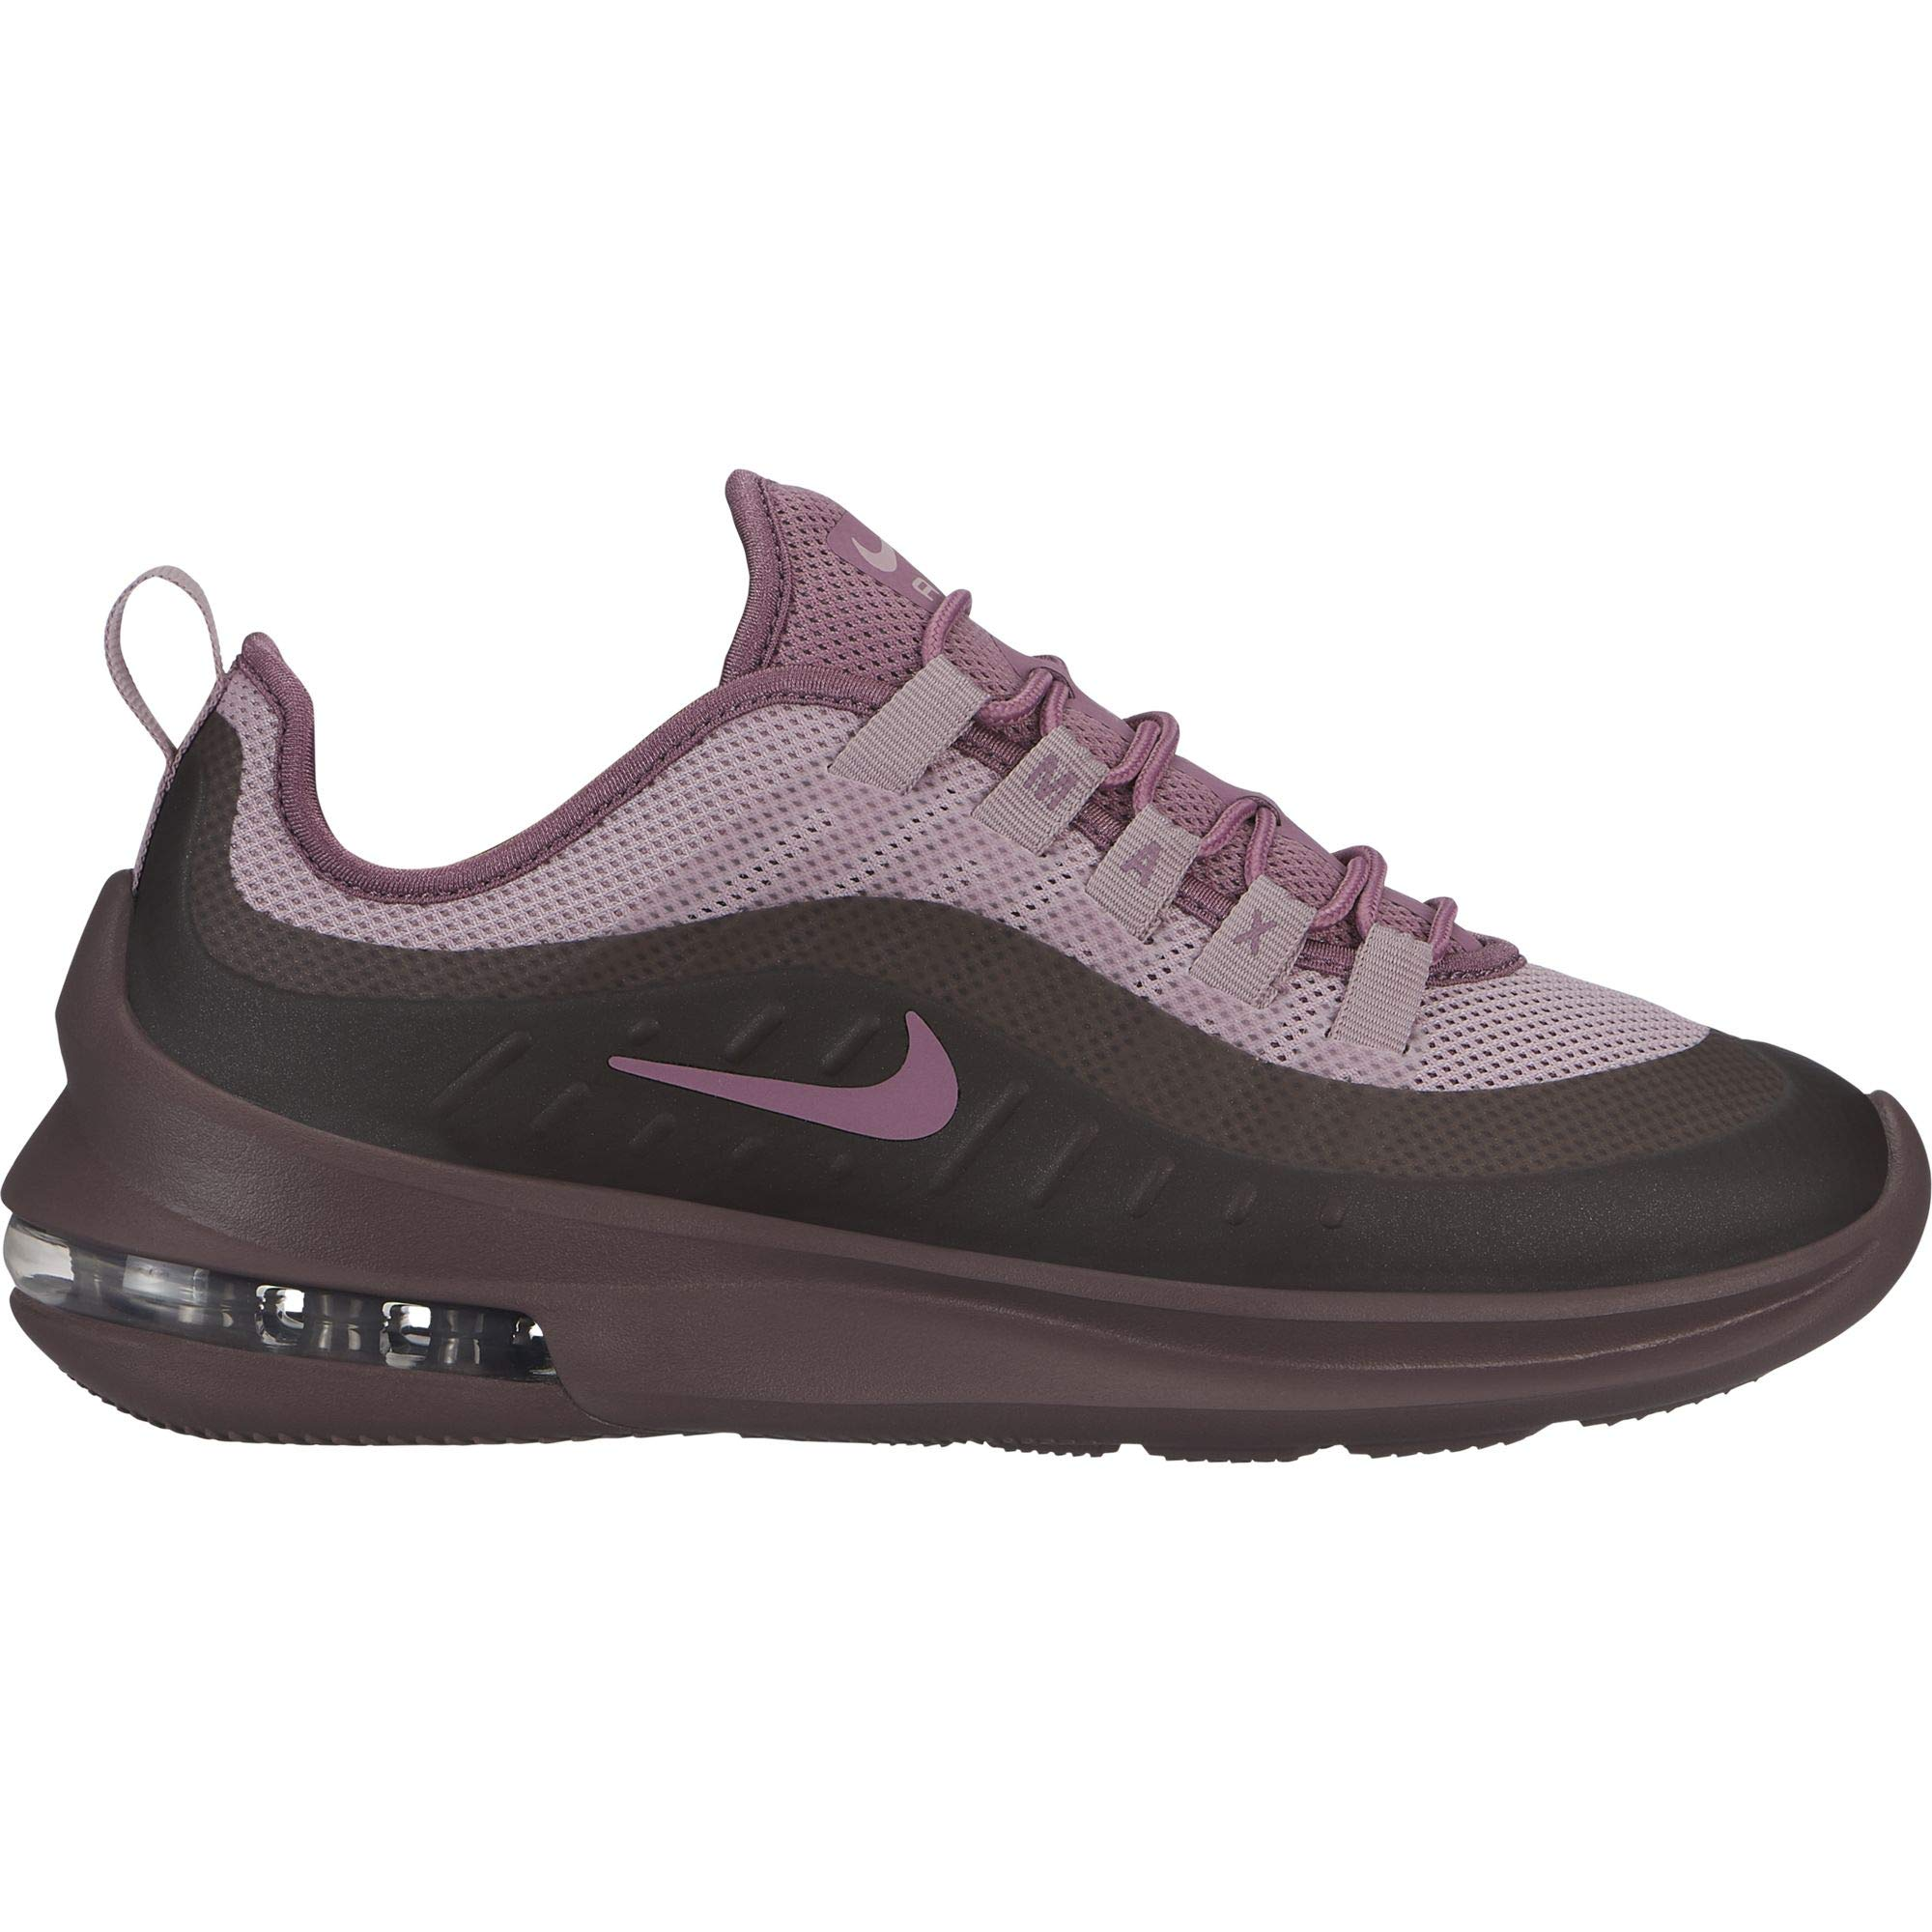 Nike Women's Air Max Axis Running Shoes Plum Dust/Plum Chalk (500), Size 6